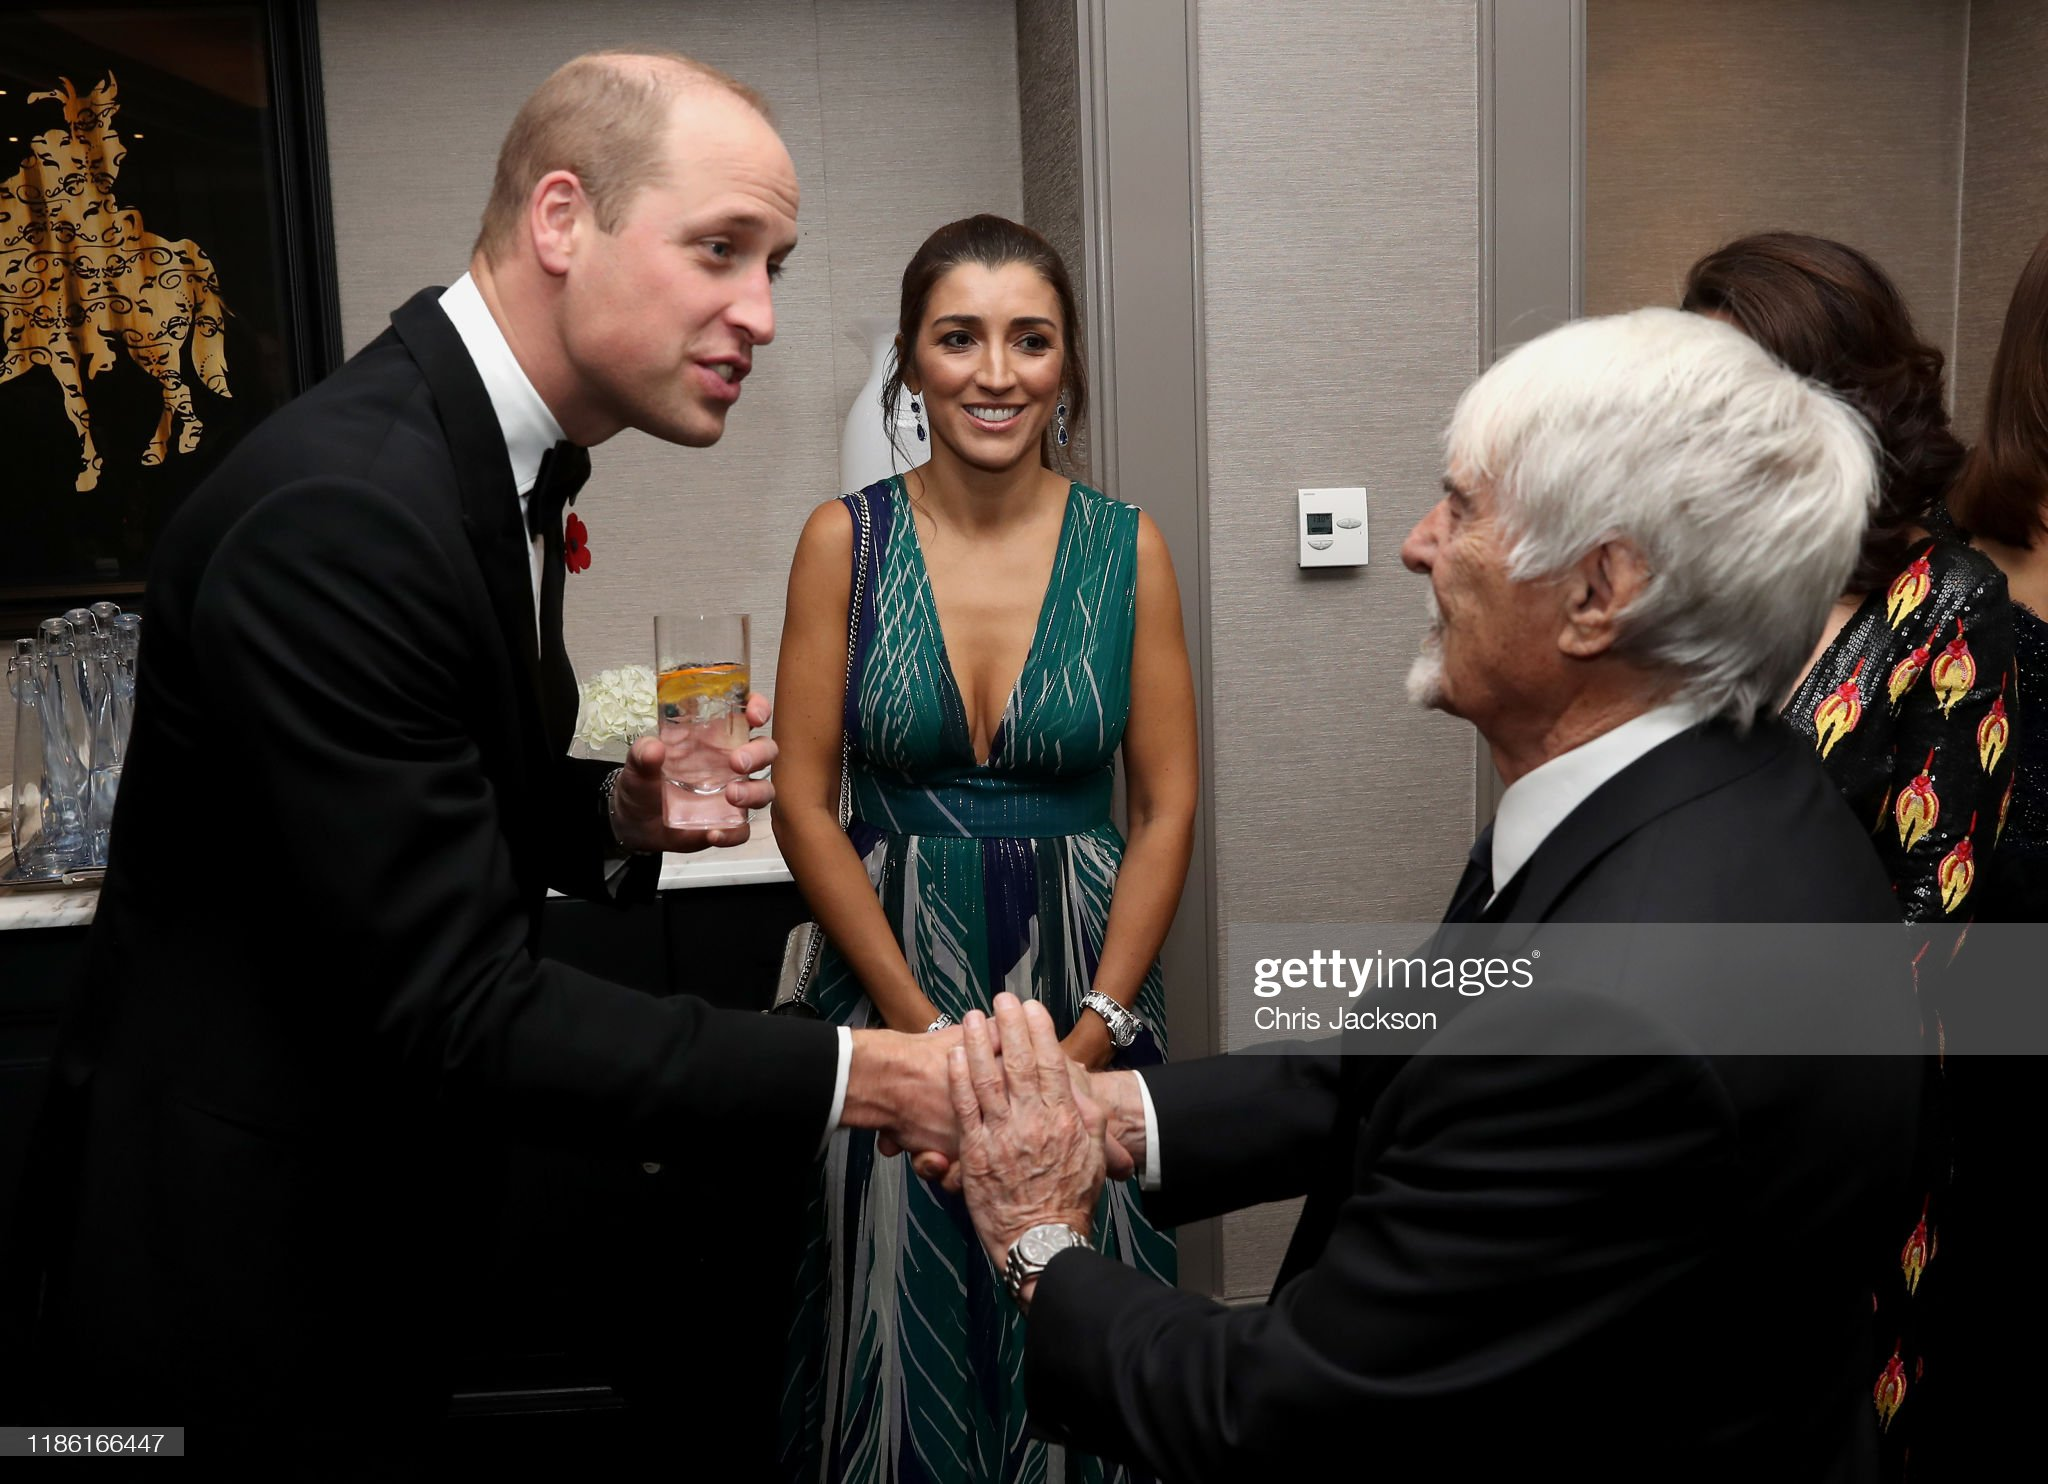 prince-william-duke-of-cambridge-with-bernie-ecclestone-and-guests-as-picture-id1186166447